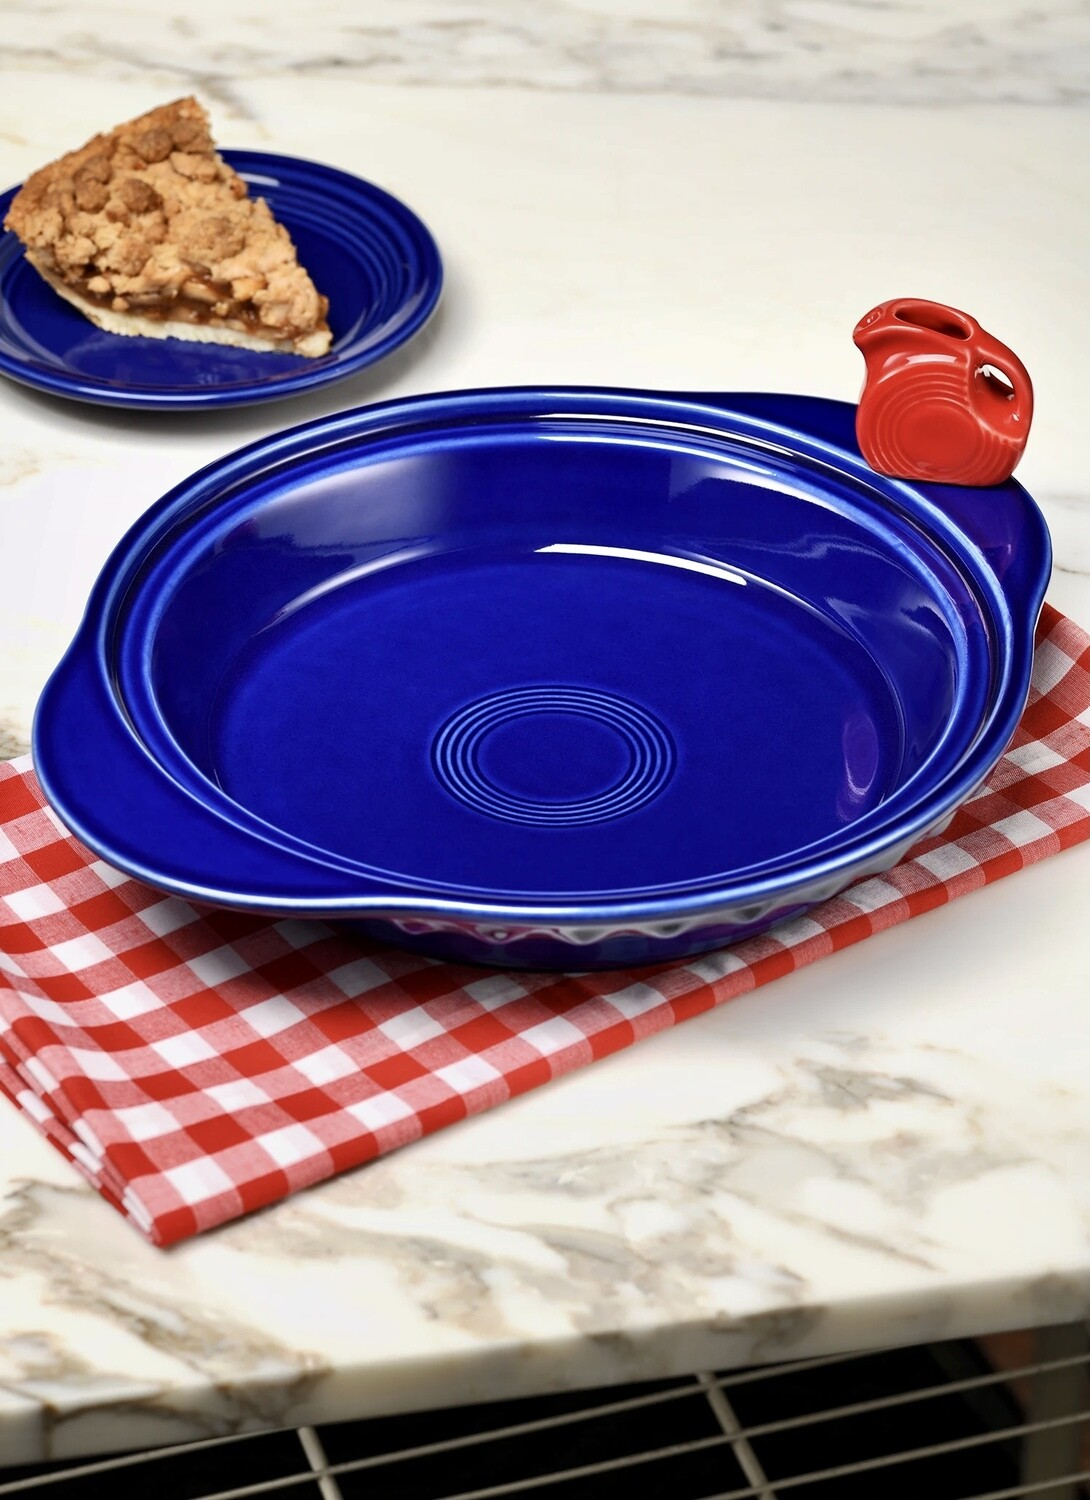 Exclusive 2021 FIESTA & Nora Fleming Deep Dish Pie Plate with Handles